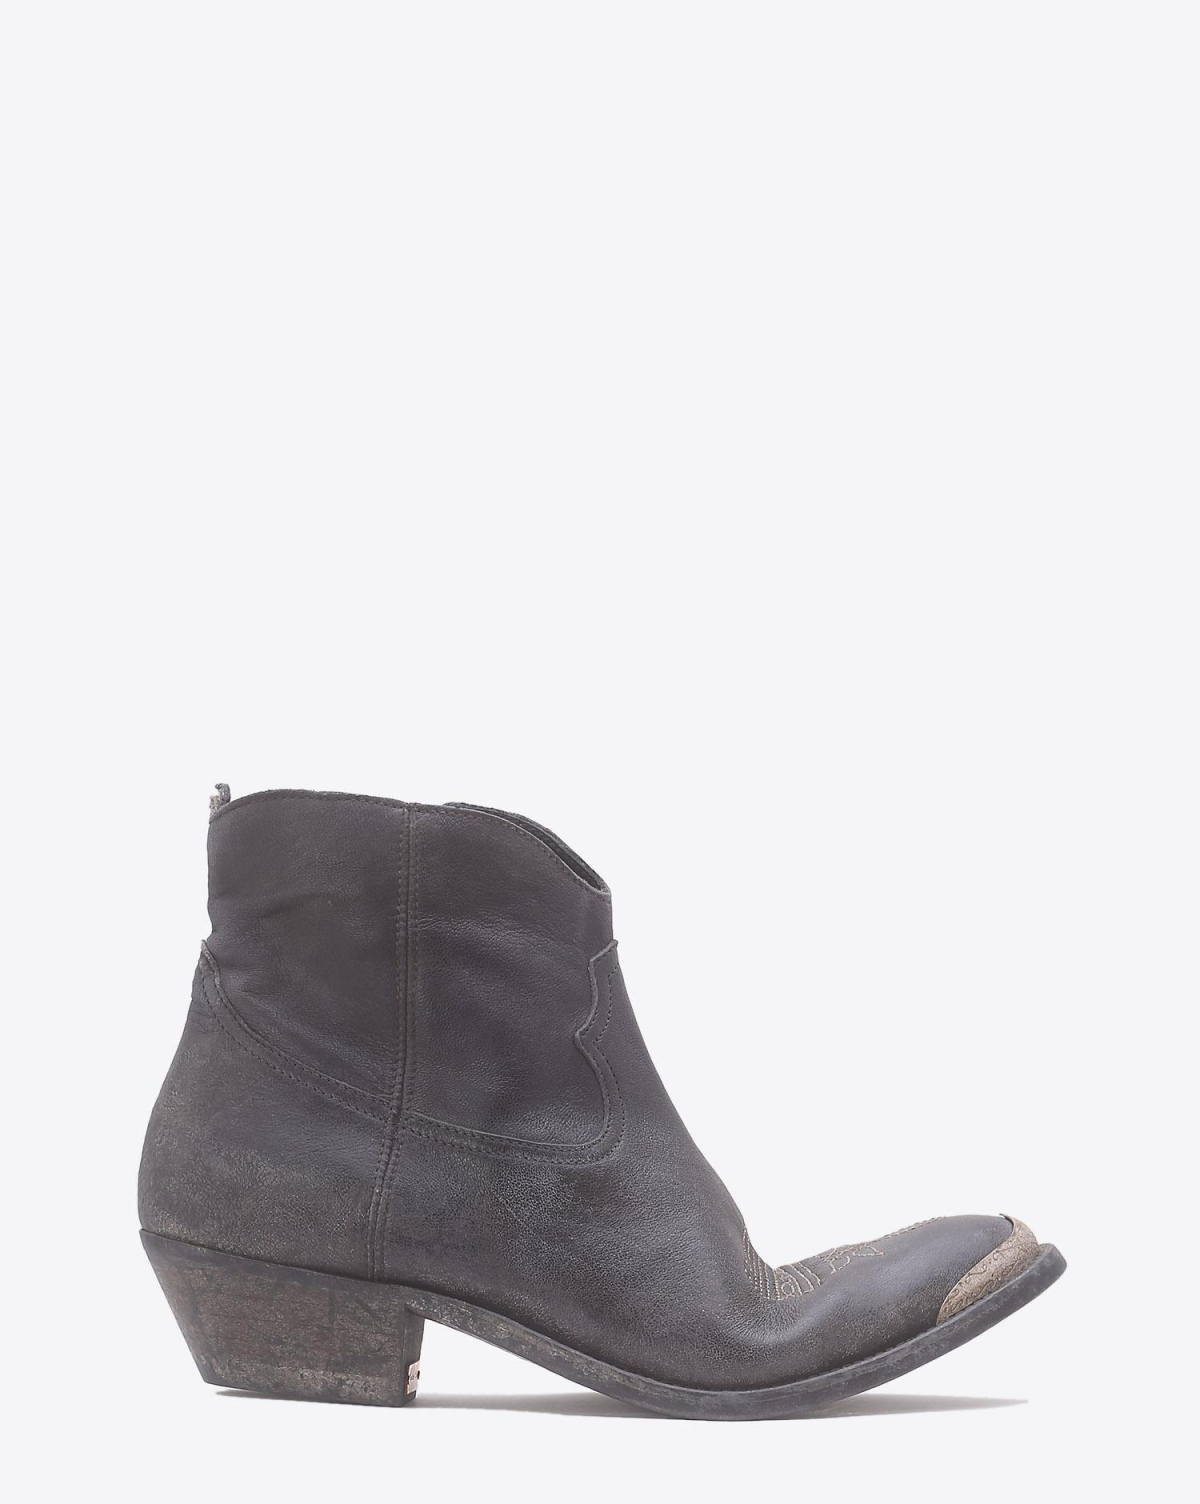 Golden Goose Woman Chaussures Pré-Collection Boots Young - Mid Grey